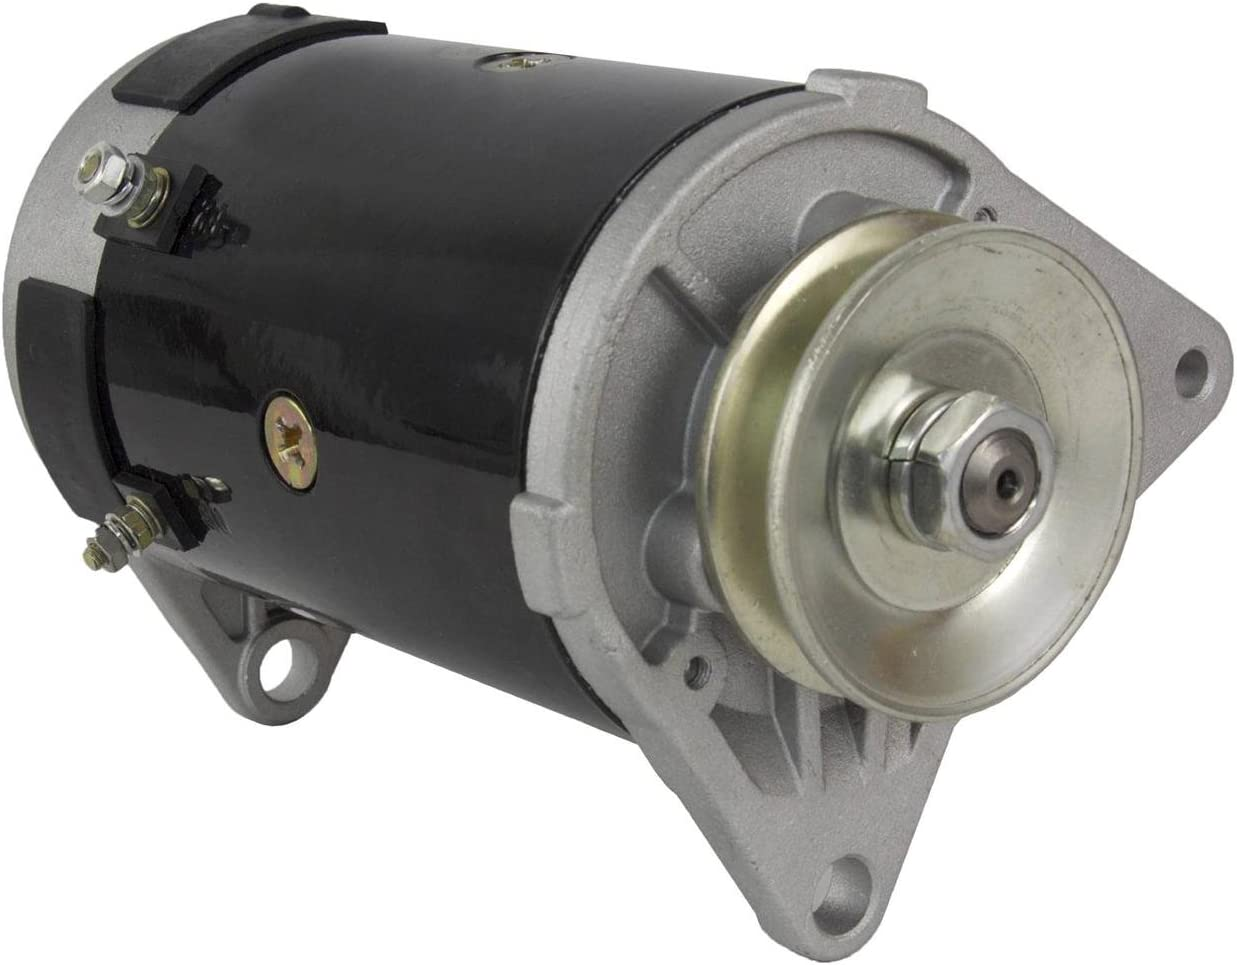 Rareelectrical NEW STARTER GENERATOR WITH Manufacturer direct delivery 4 years warranty EZ-GO COMPATIBLE PC-95